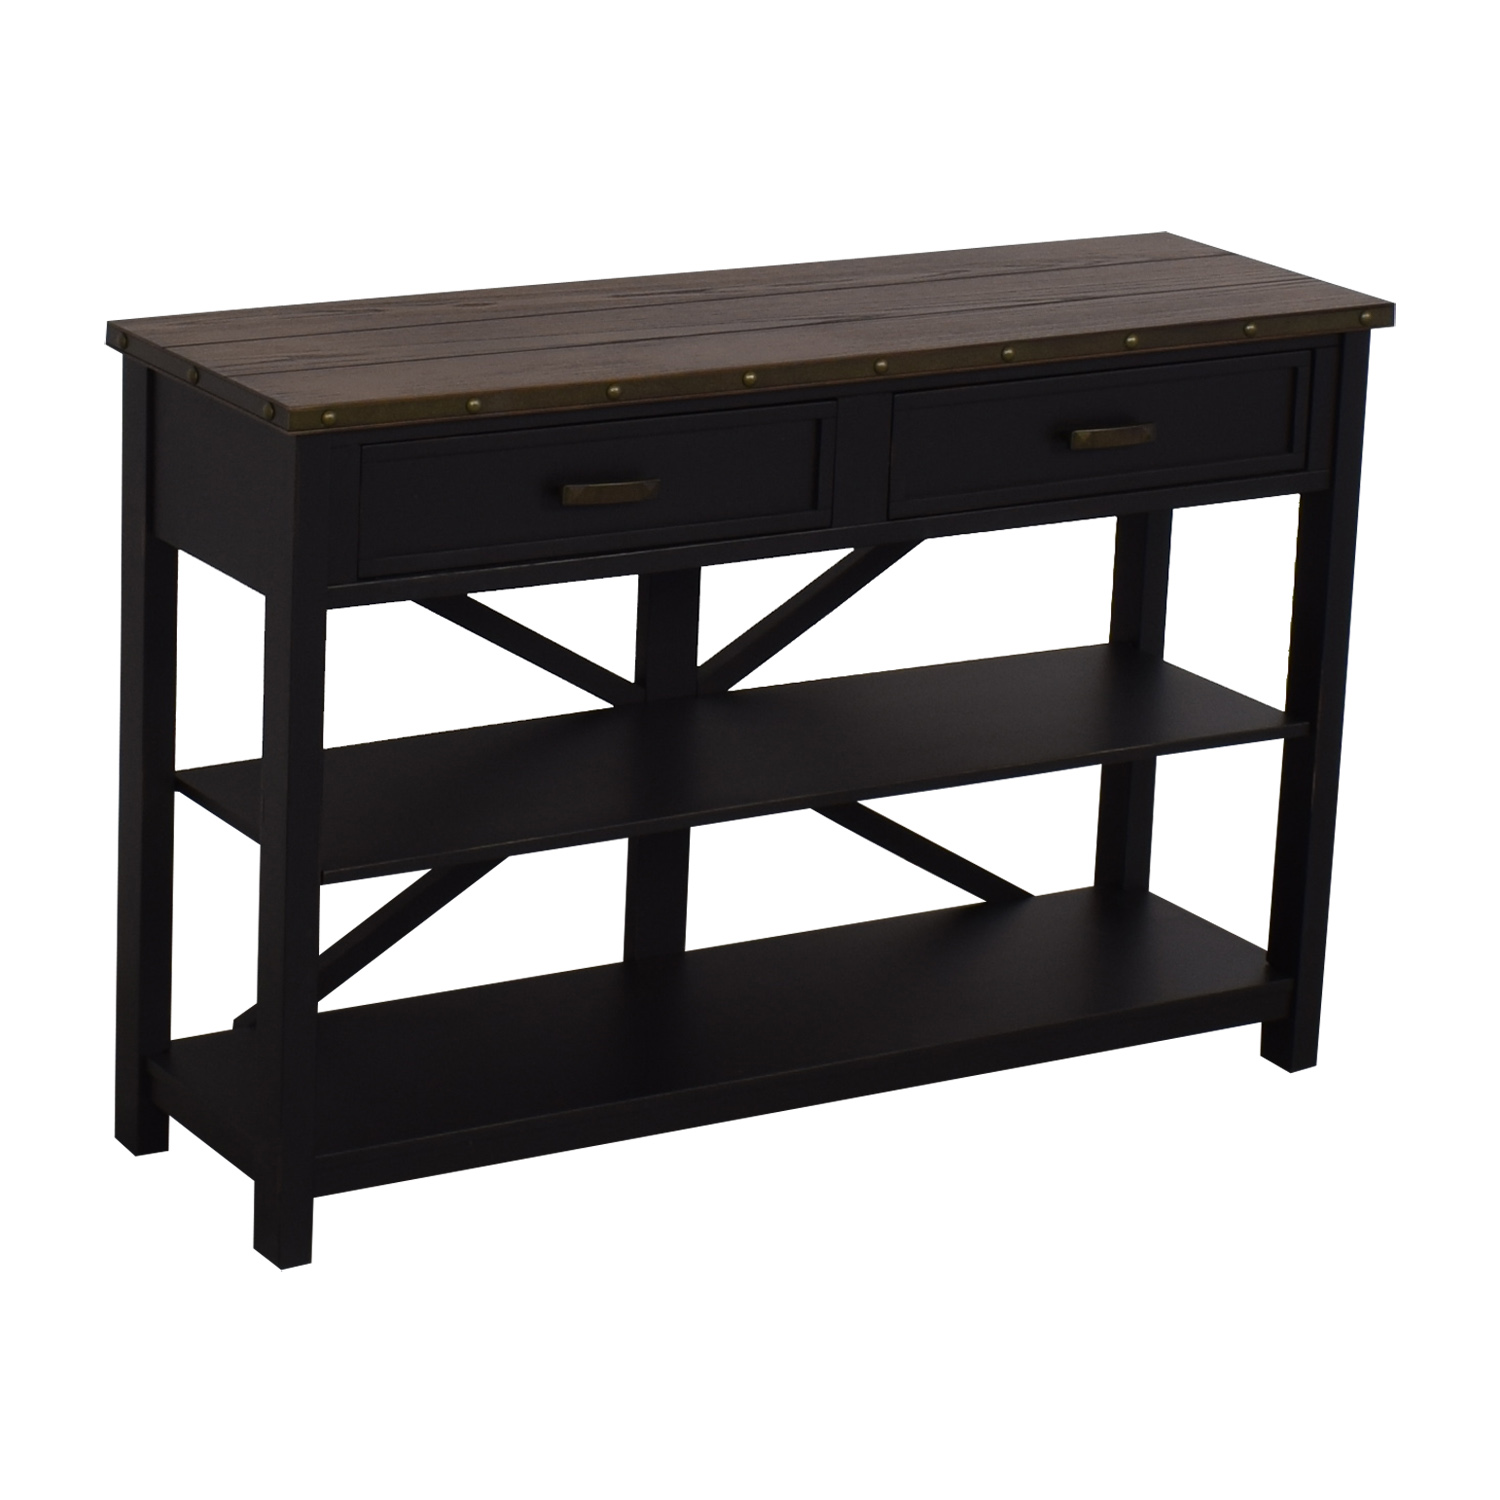 buy Raymour & Flanigan Brennan Sofa Table Raymour & Flanigan Tables